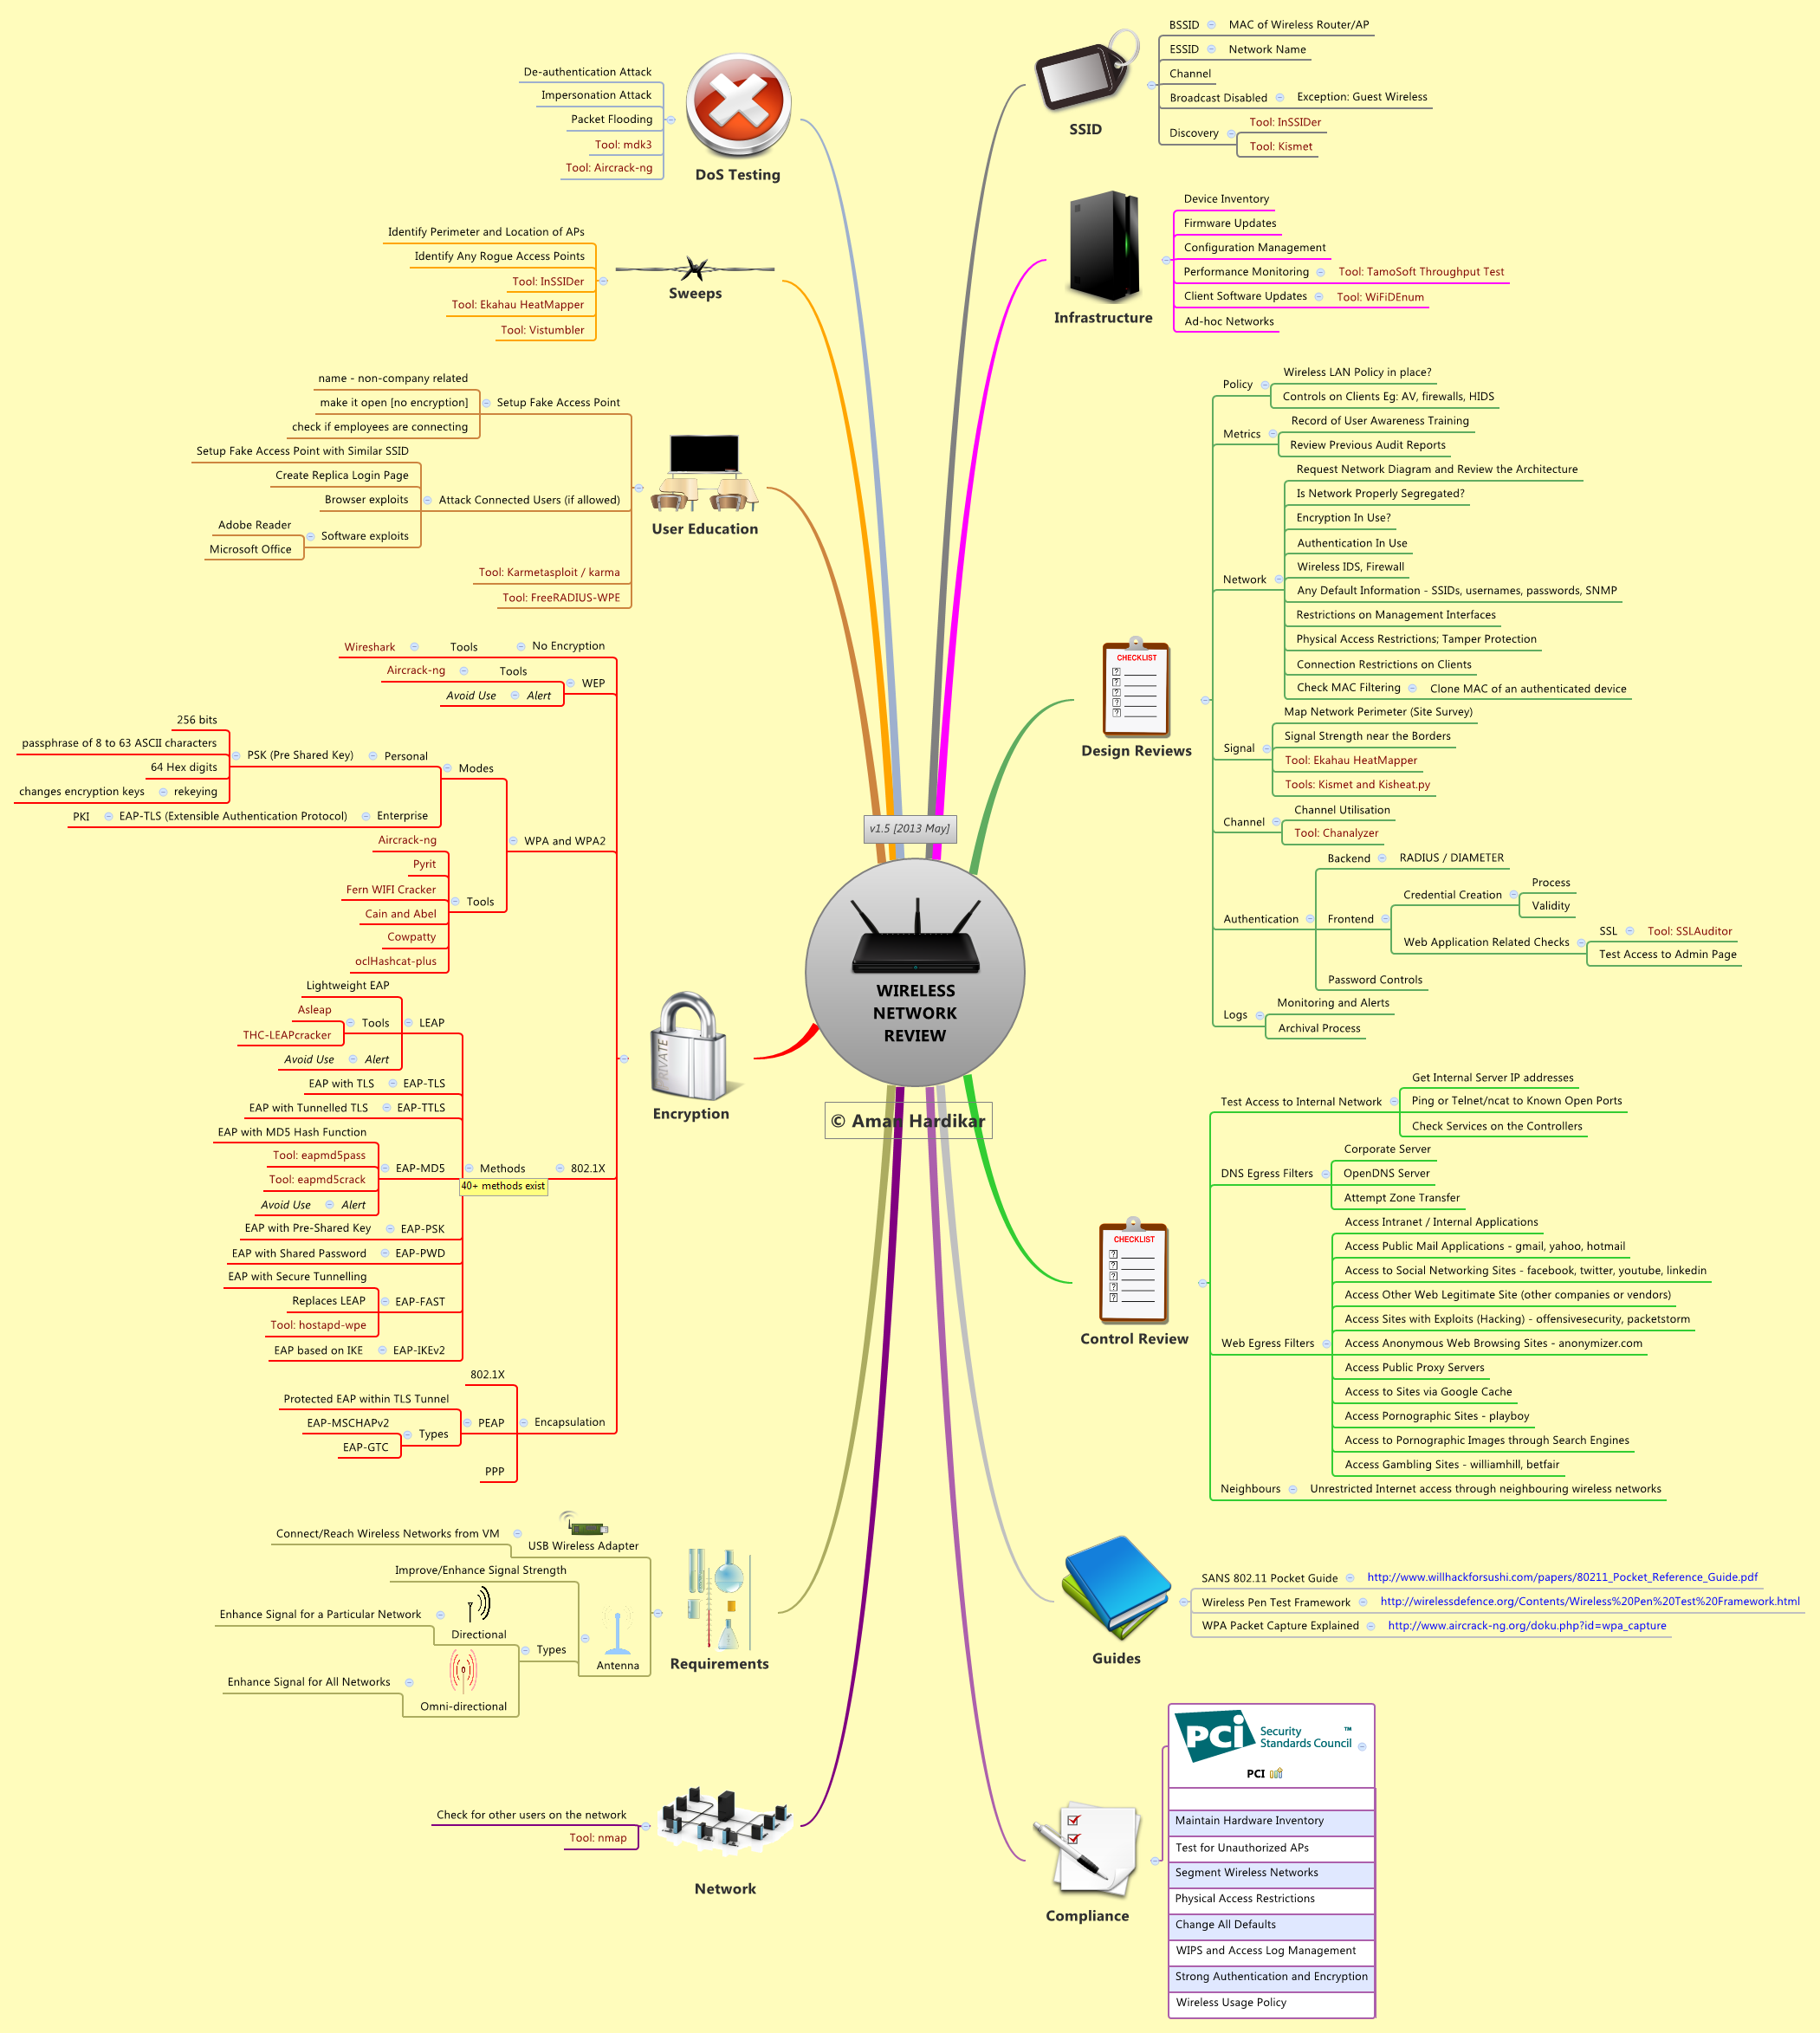 Awesome Mind Maps - Review Posters for a Ton of Infosec Topics (See